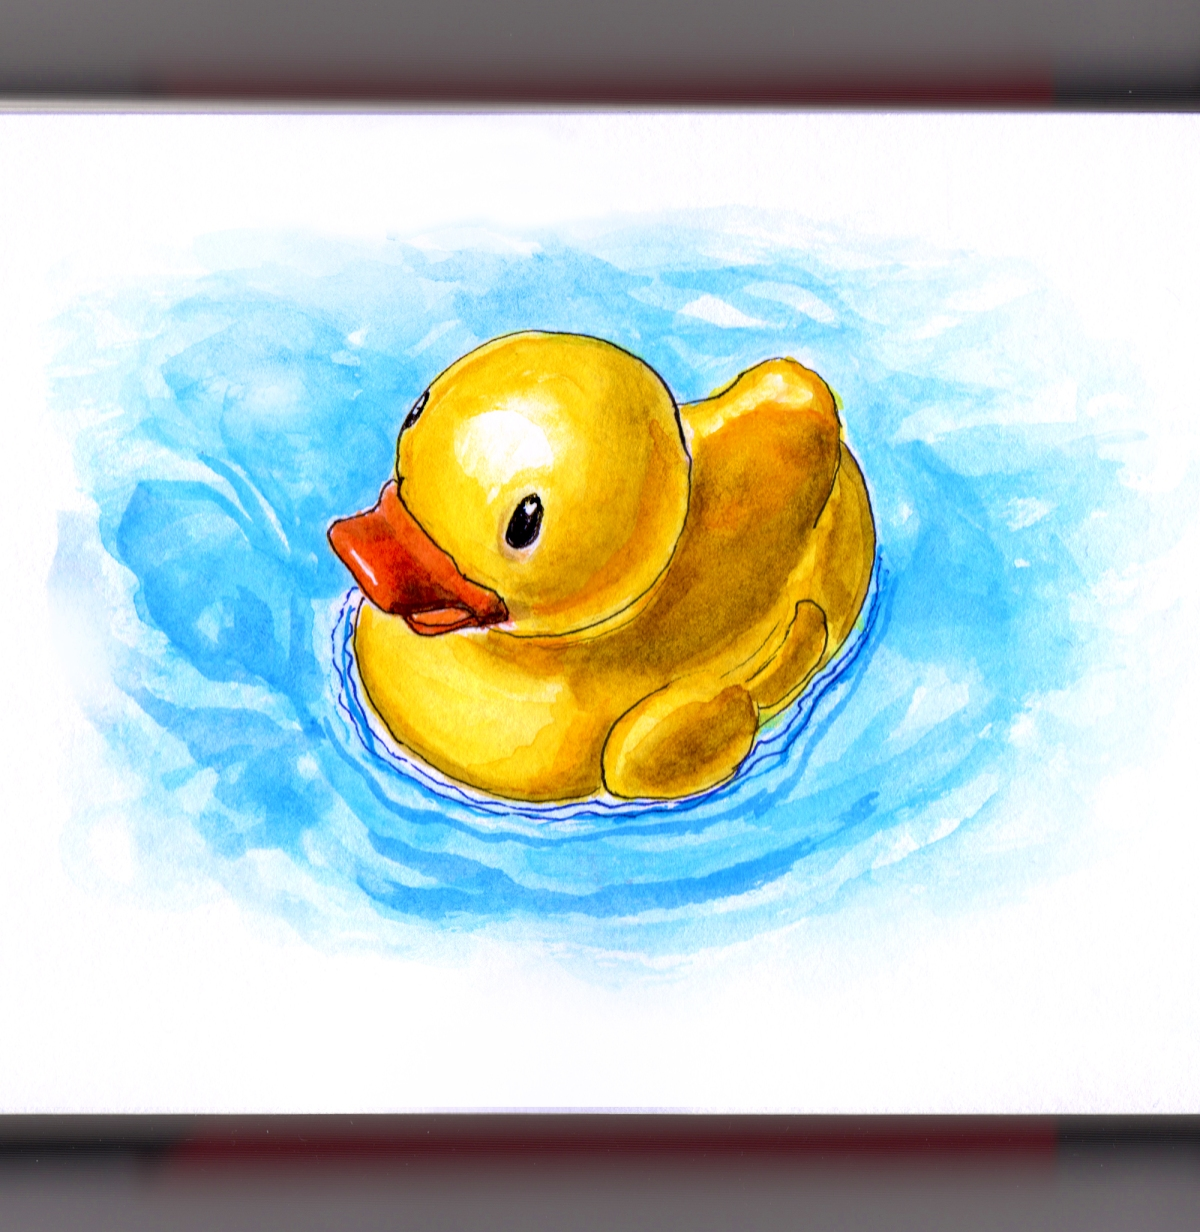 First to review yellow rubber duck click here to cancel reply - Day 12 Worldwatercolorgroup Rubber Duckie Rubber Ducky Duck In Blue Water Ernie